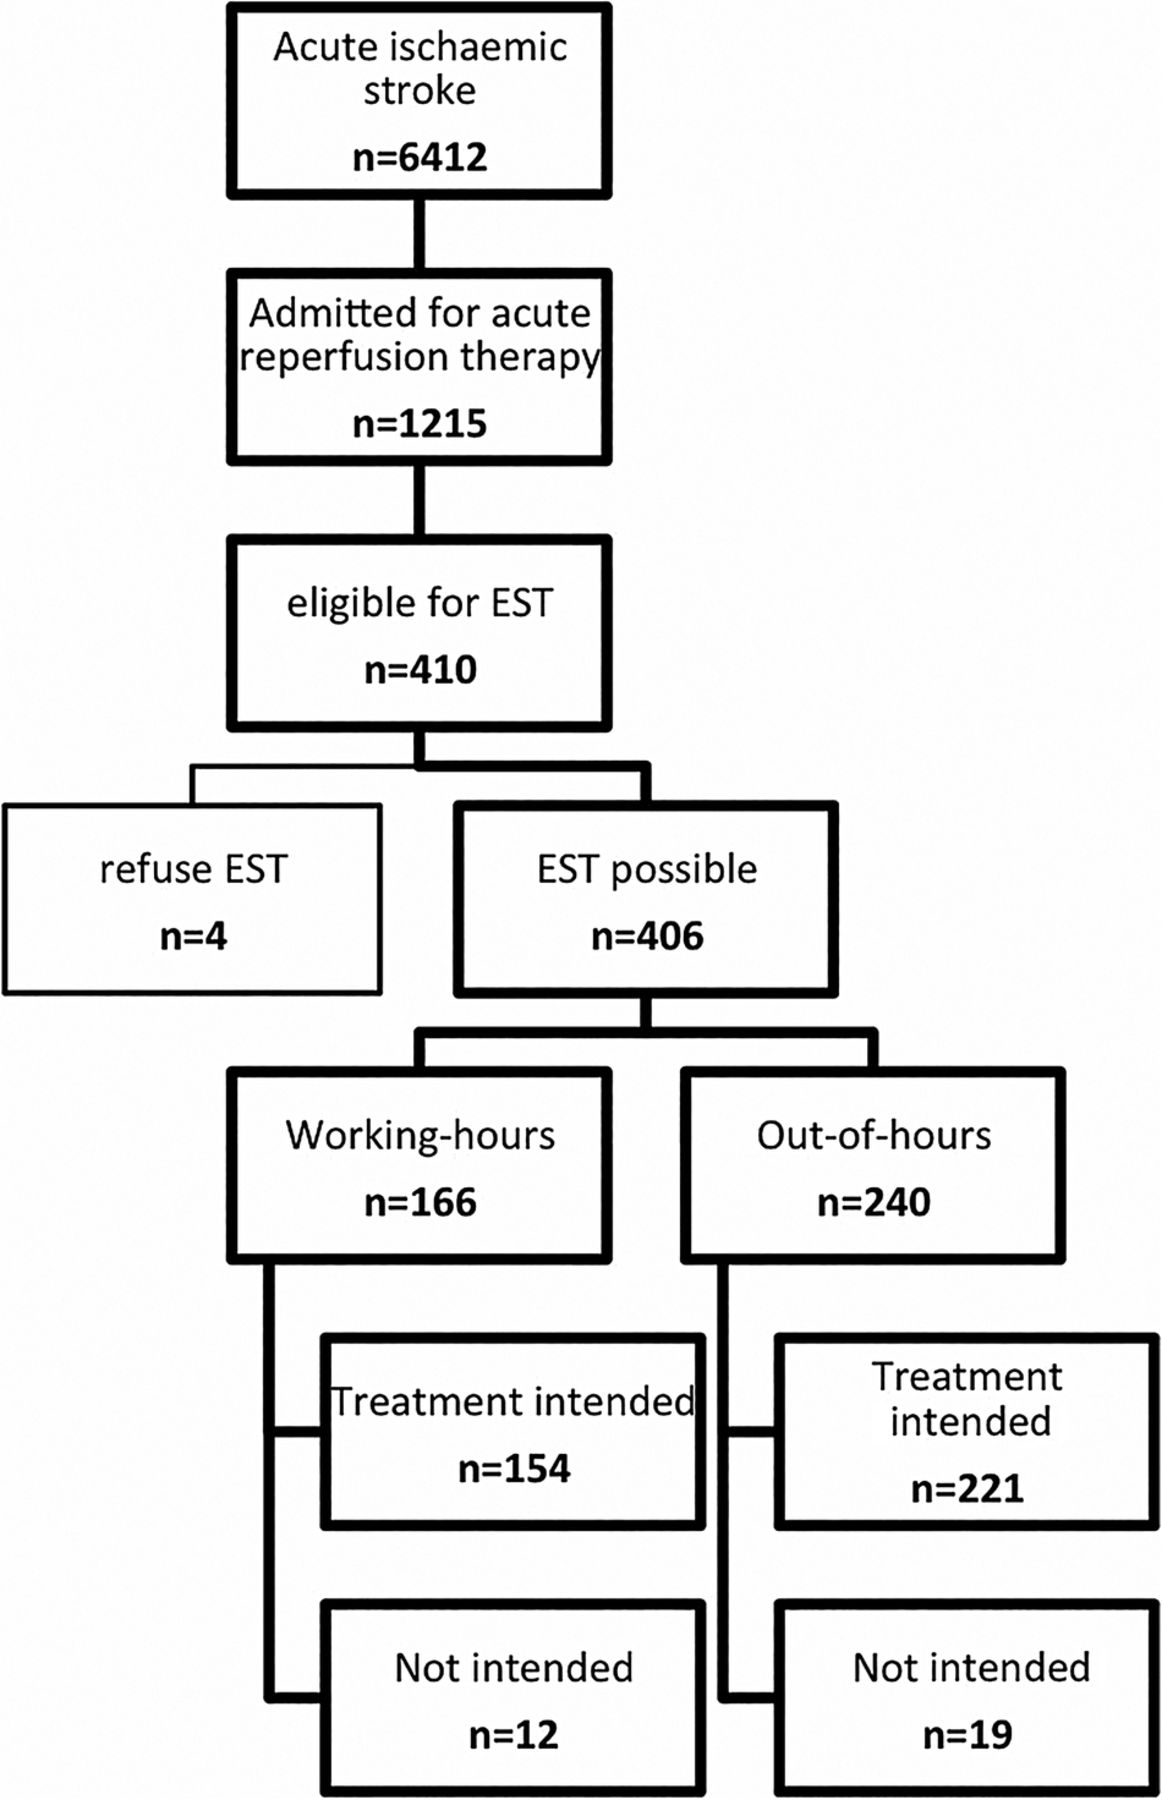 Weekend Effect In Endovascular Stroke Treatment Do